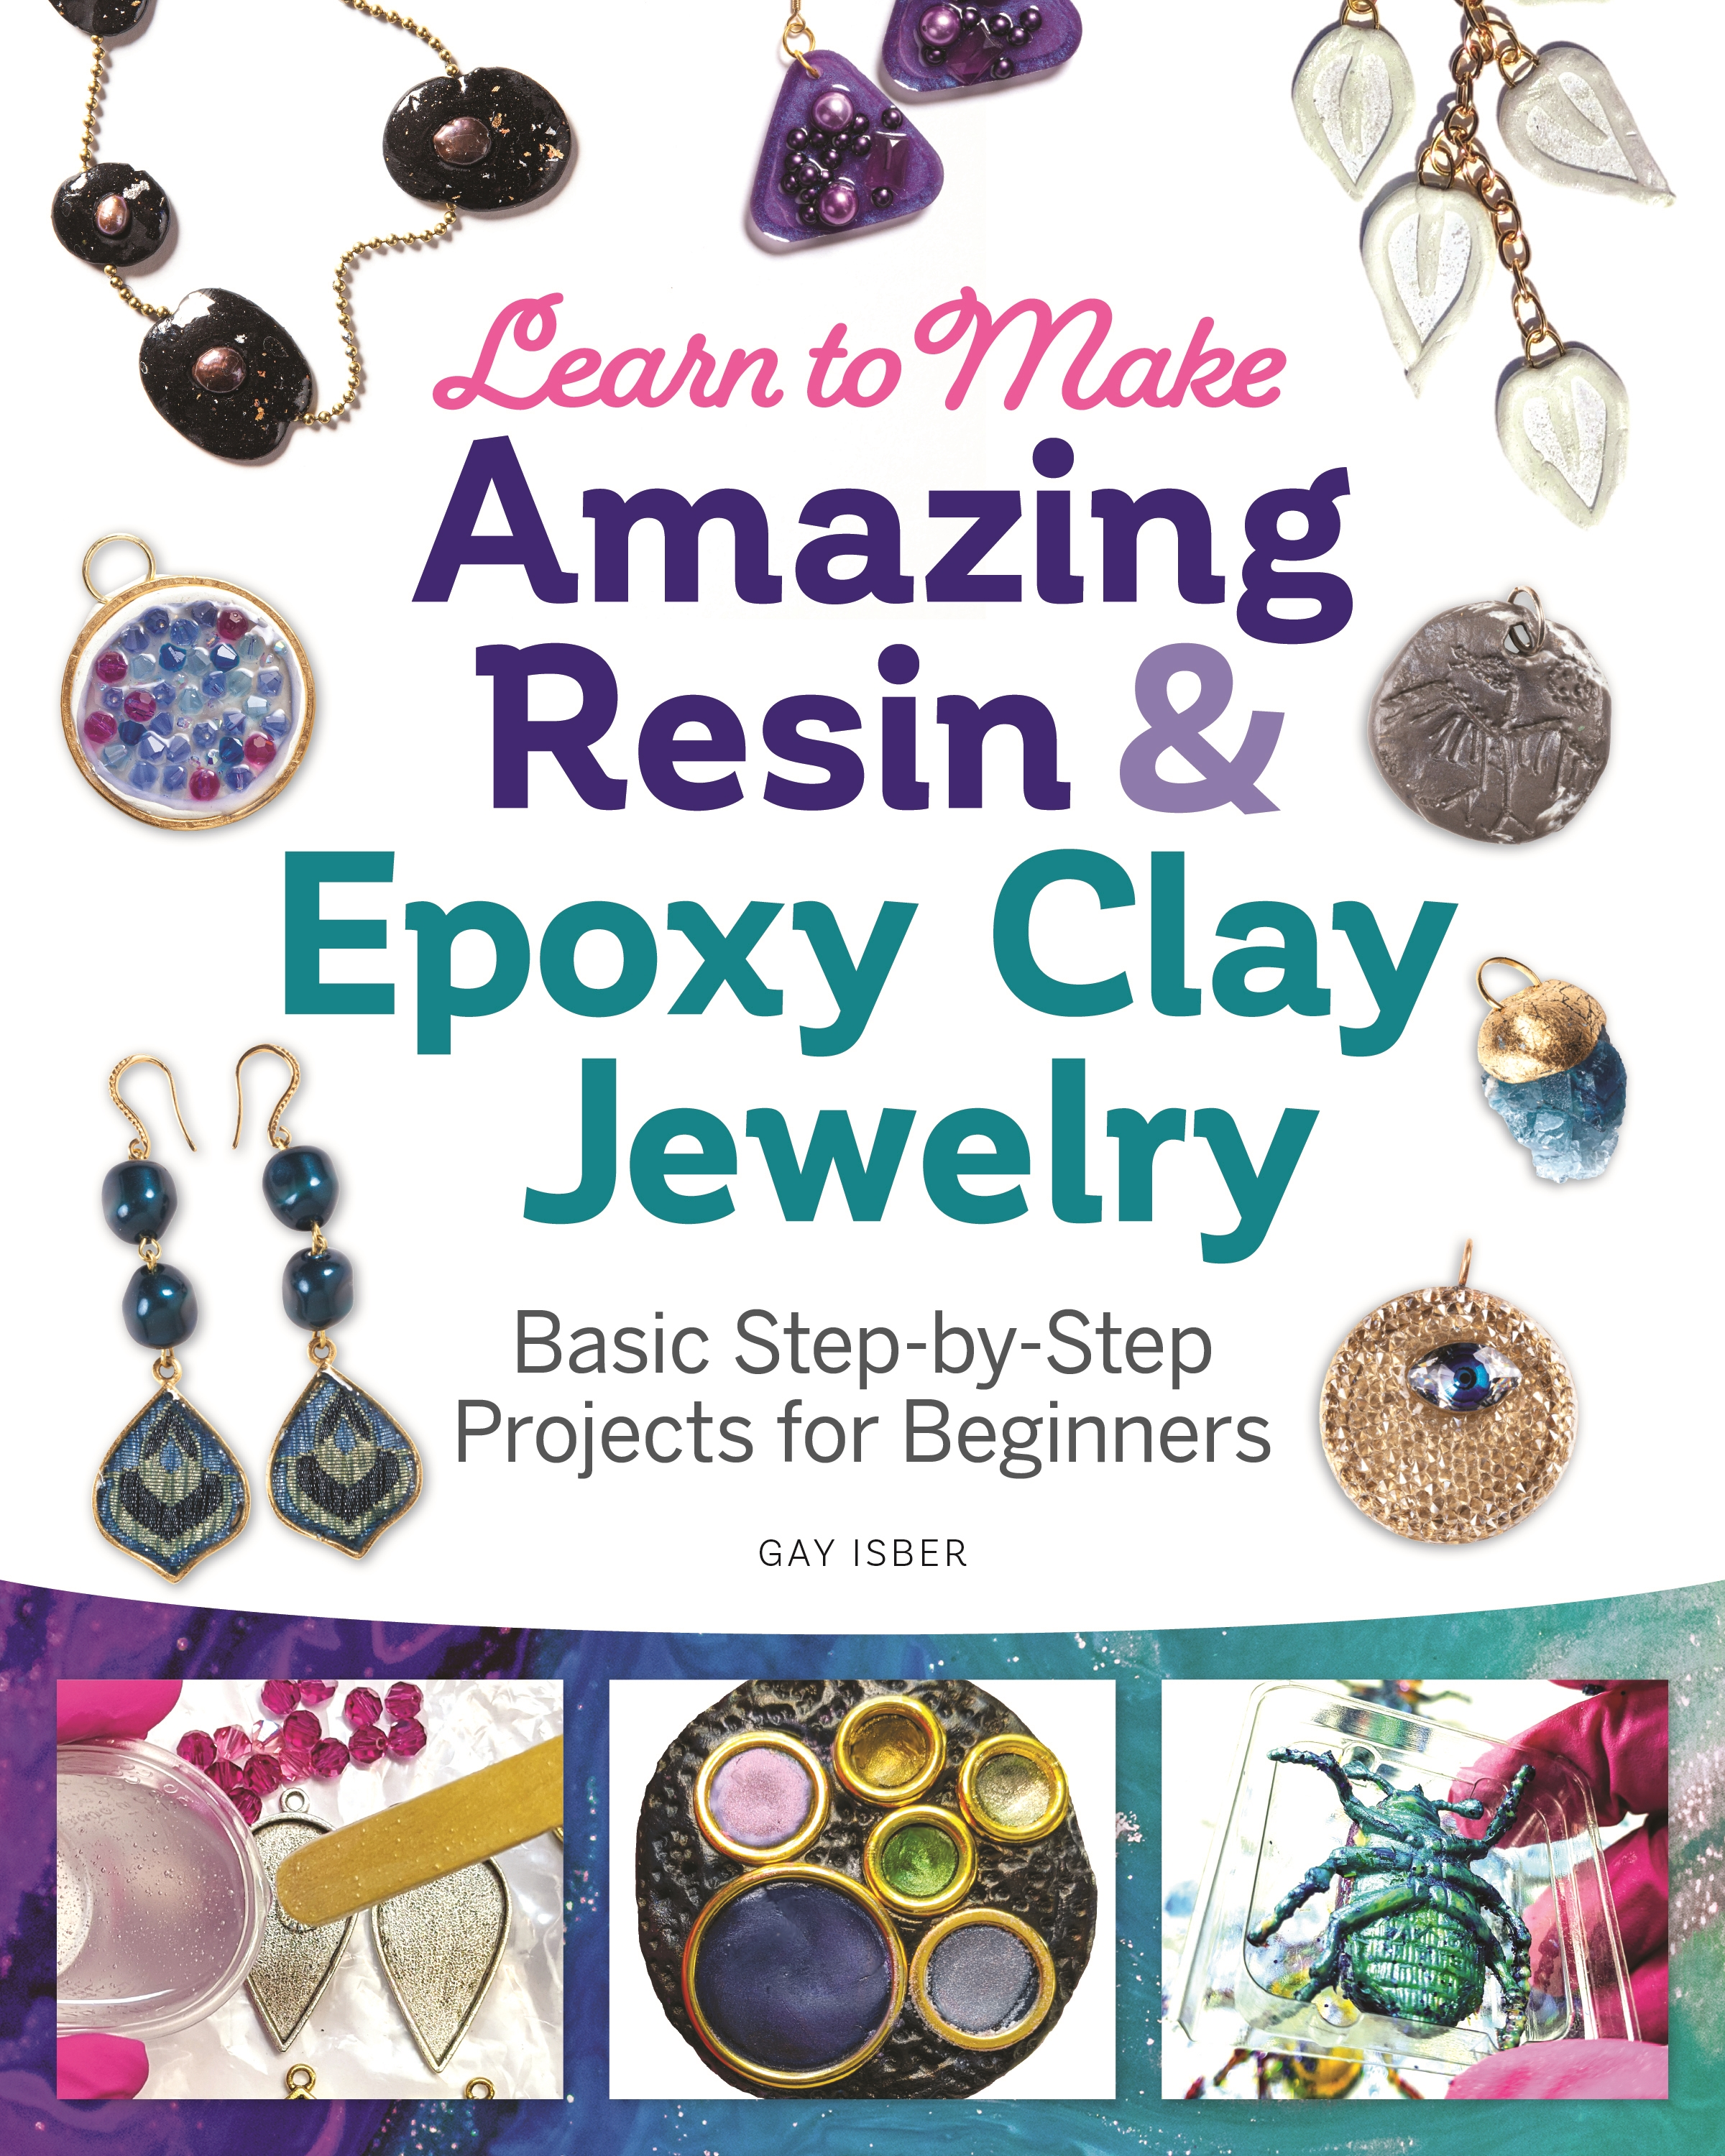 Learn to Make Amazing Resin & Epoxy Clay Jewelry